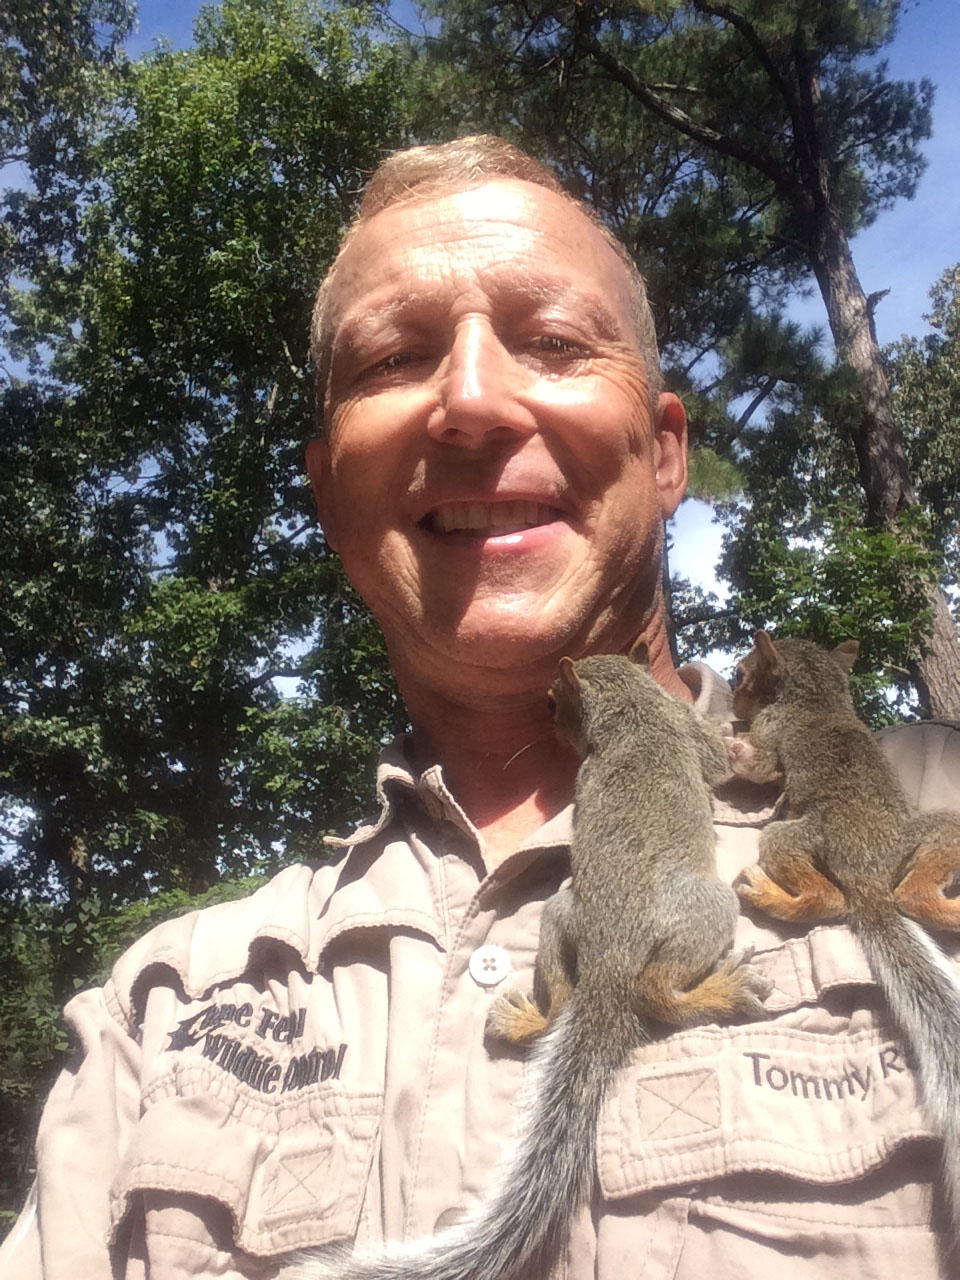 Baby Squirrels Climbing Up Tommy's Shirt